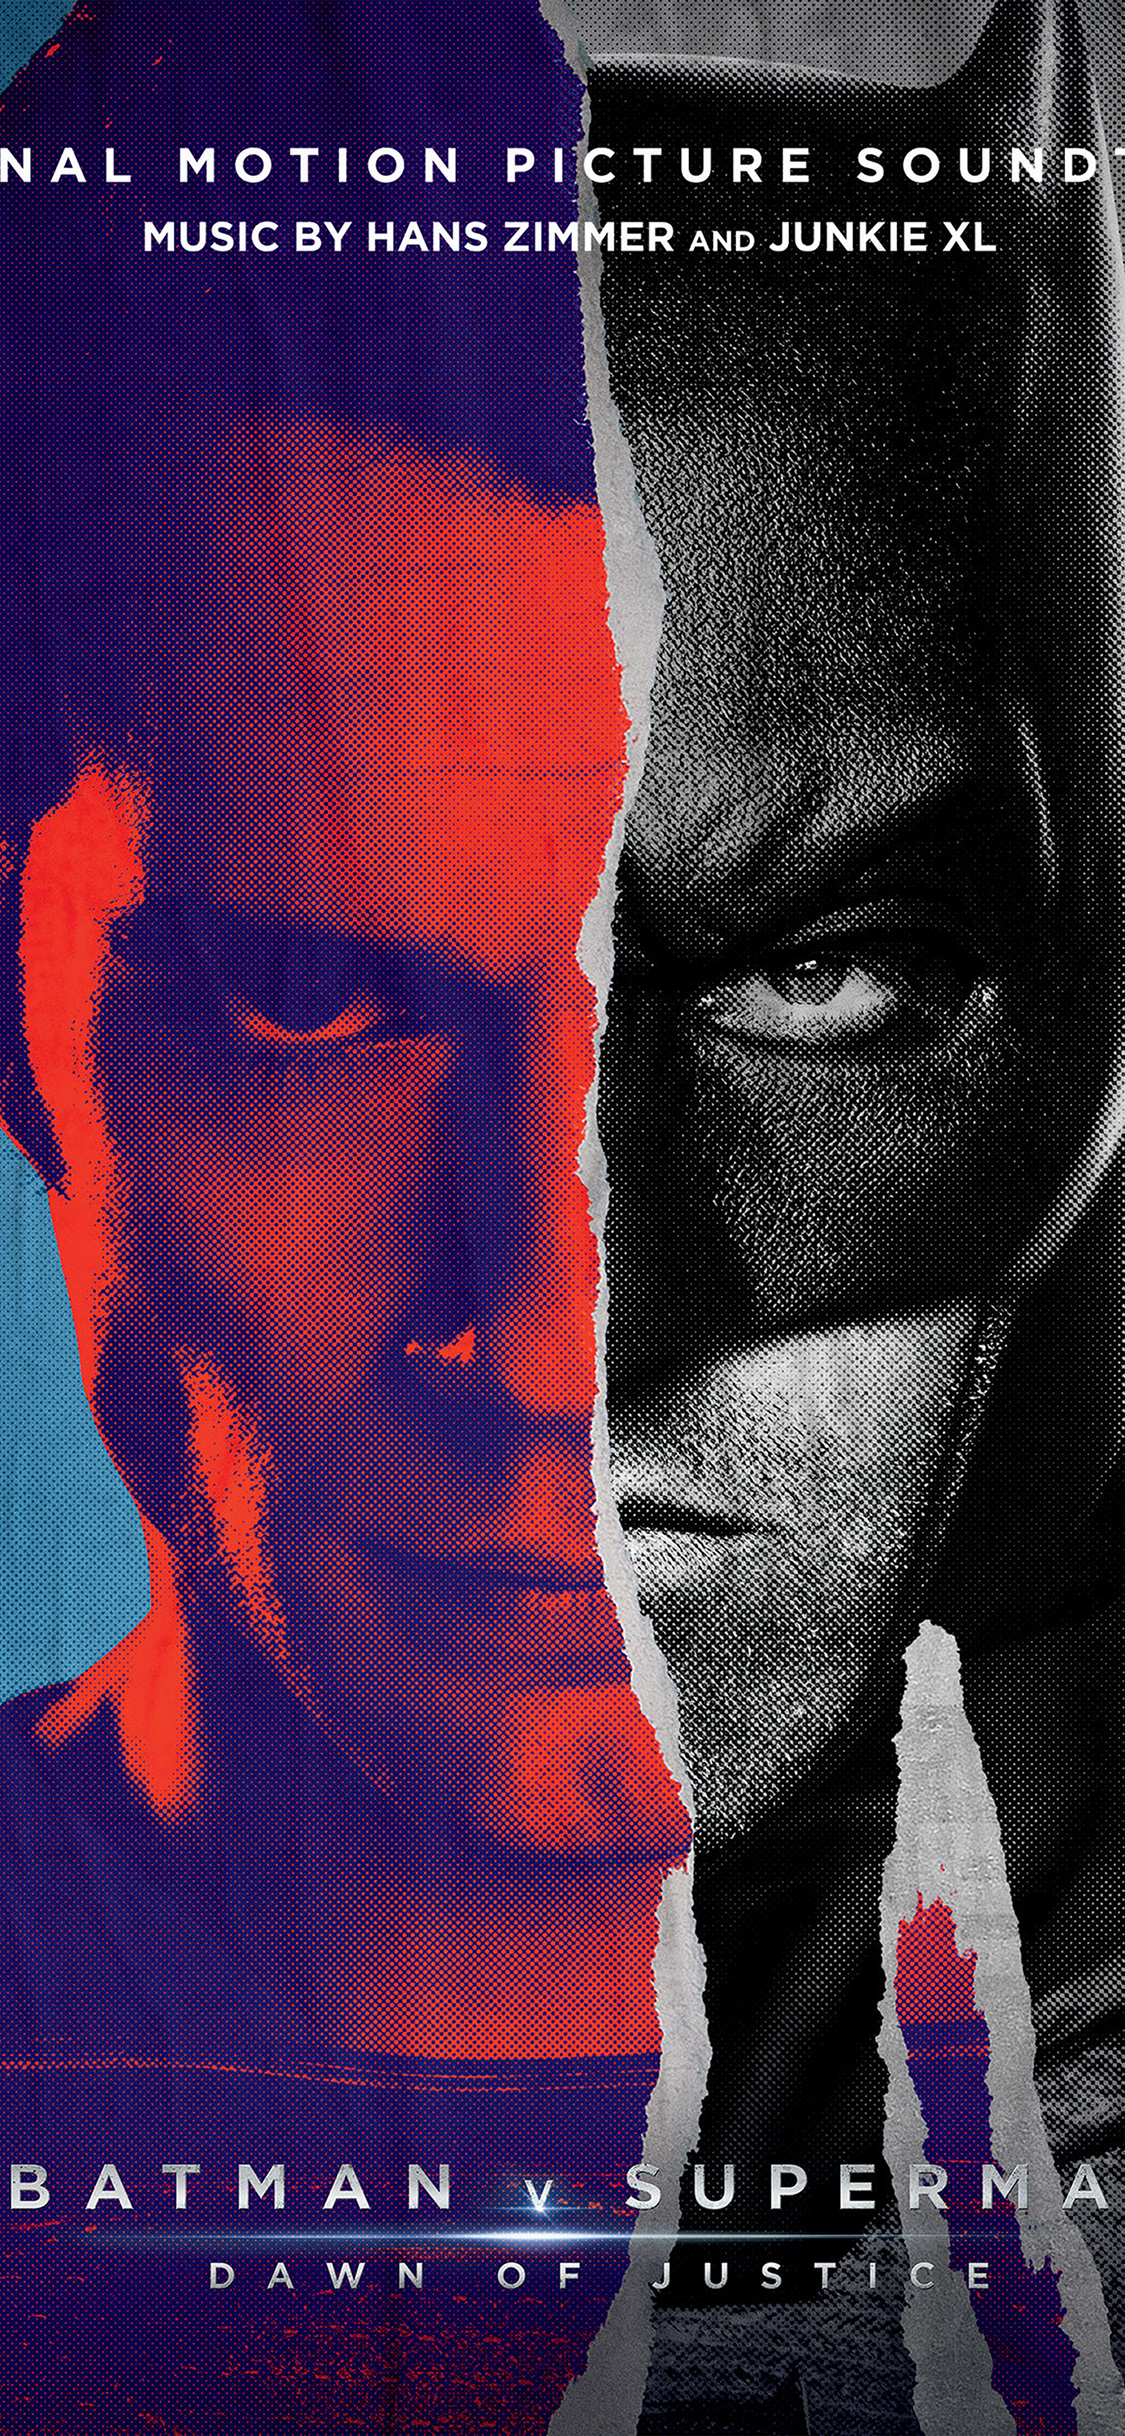 Ap57 Batman Vs Superman Poster Art Film Comics Wallpaper